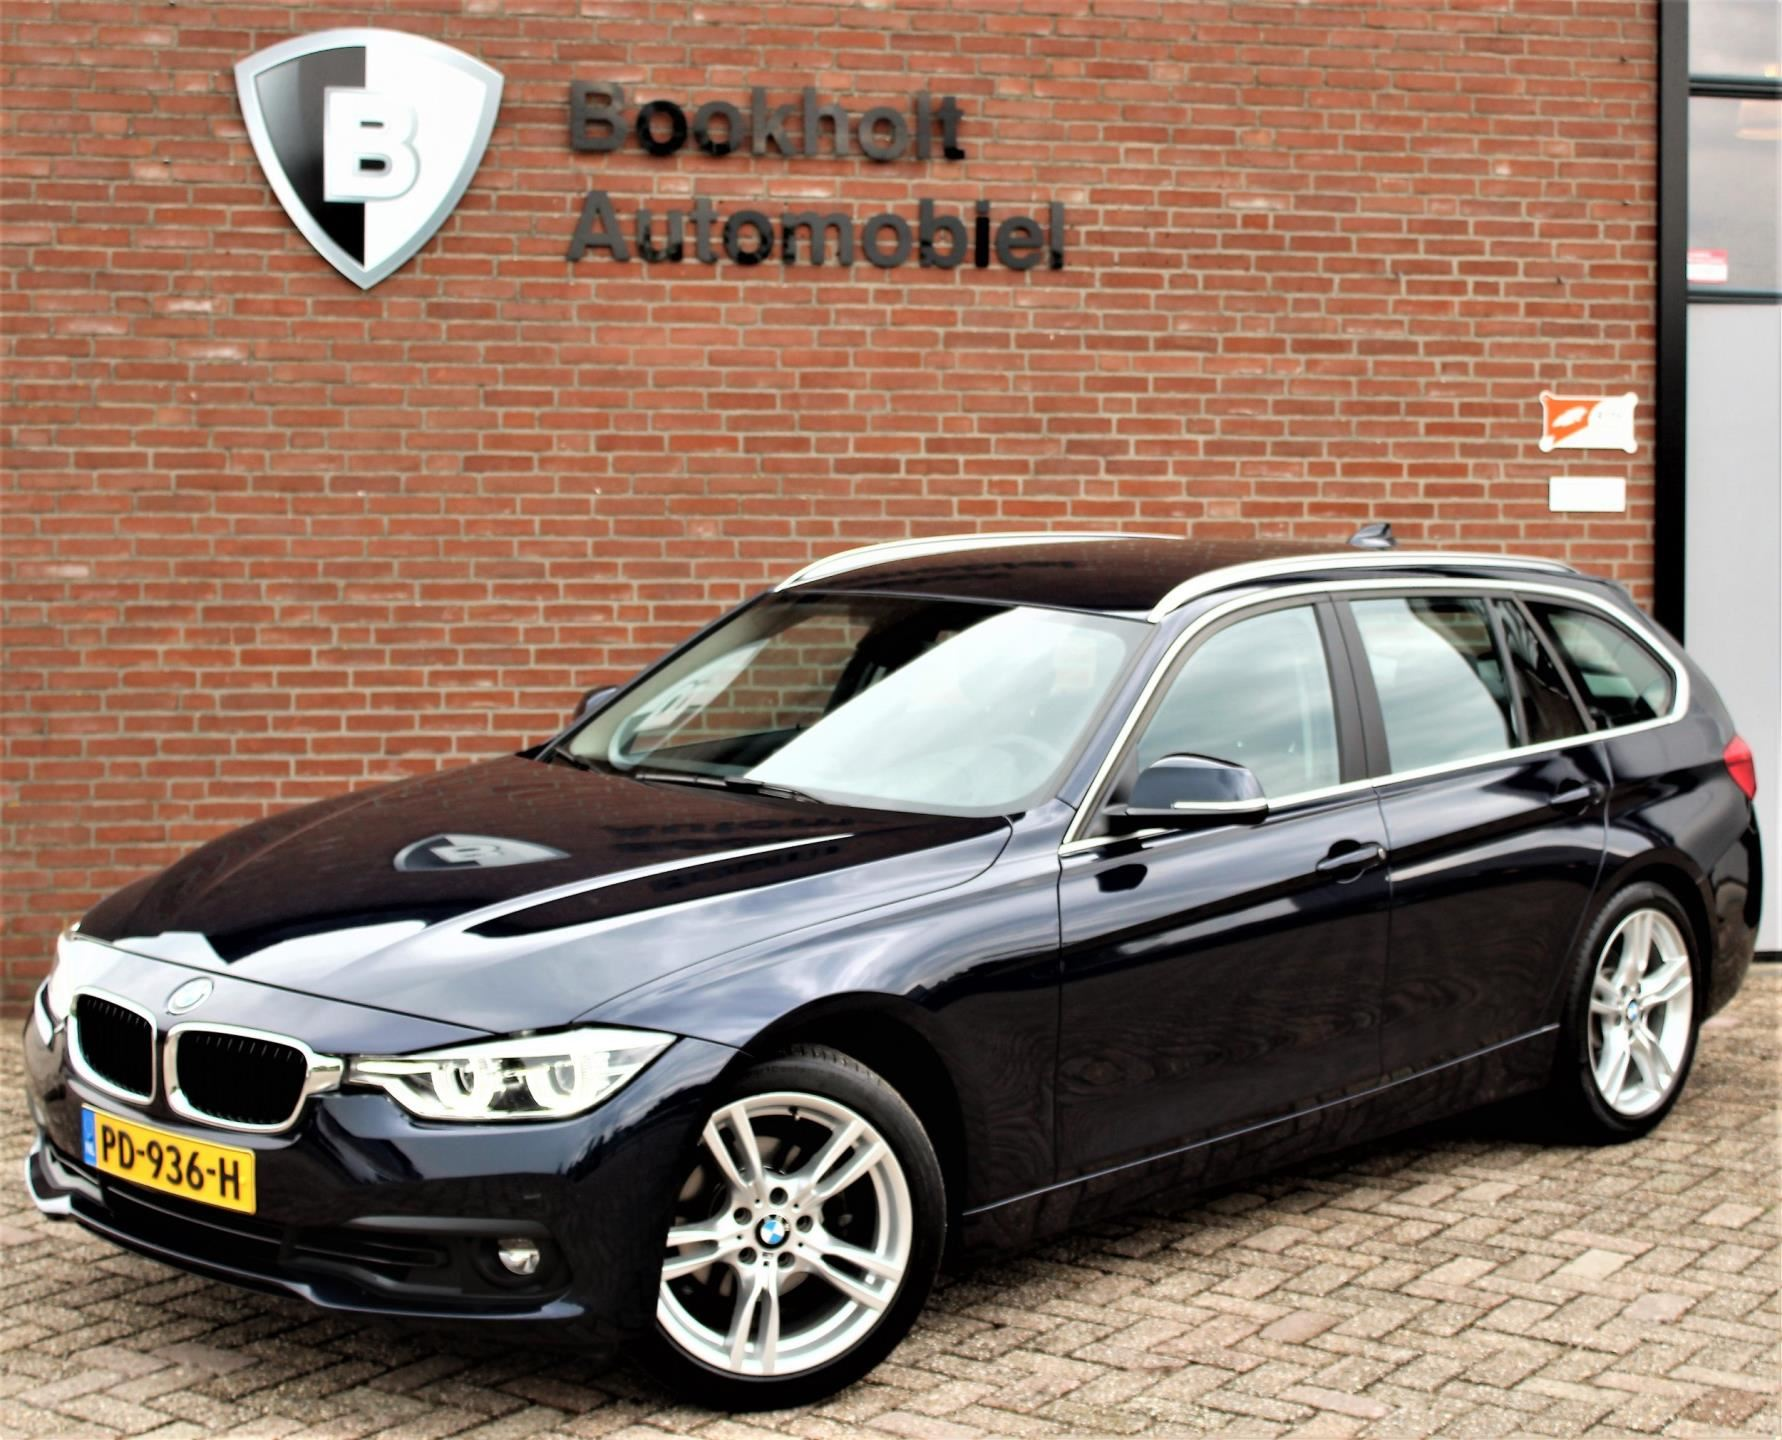 BMW 3-serie Touring occasion - Bookholt Automobiel